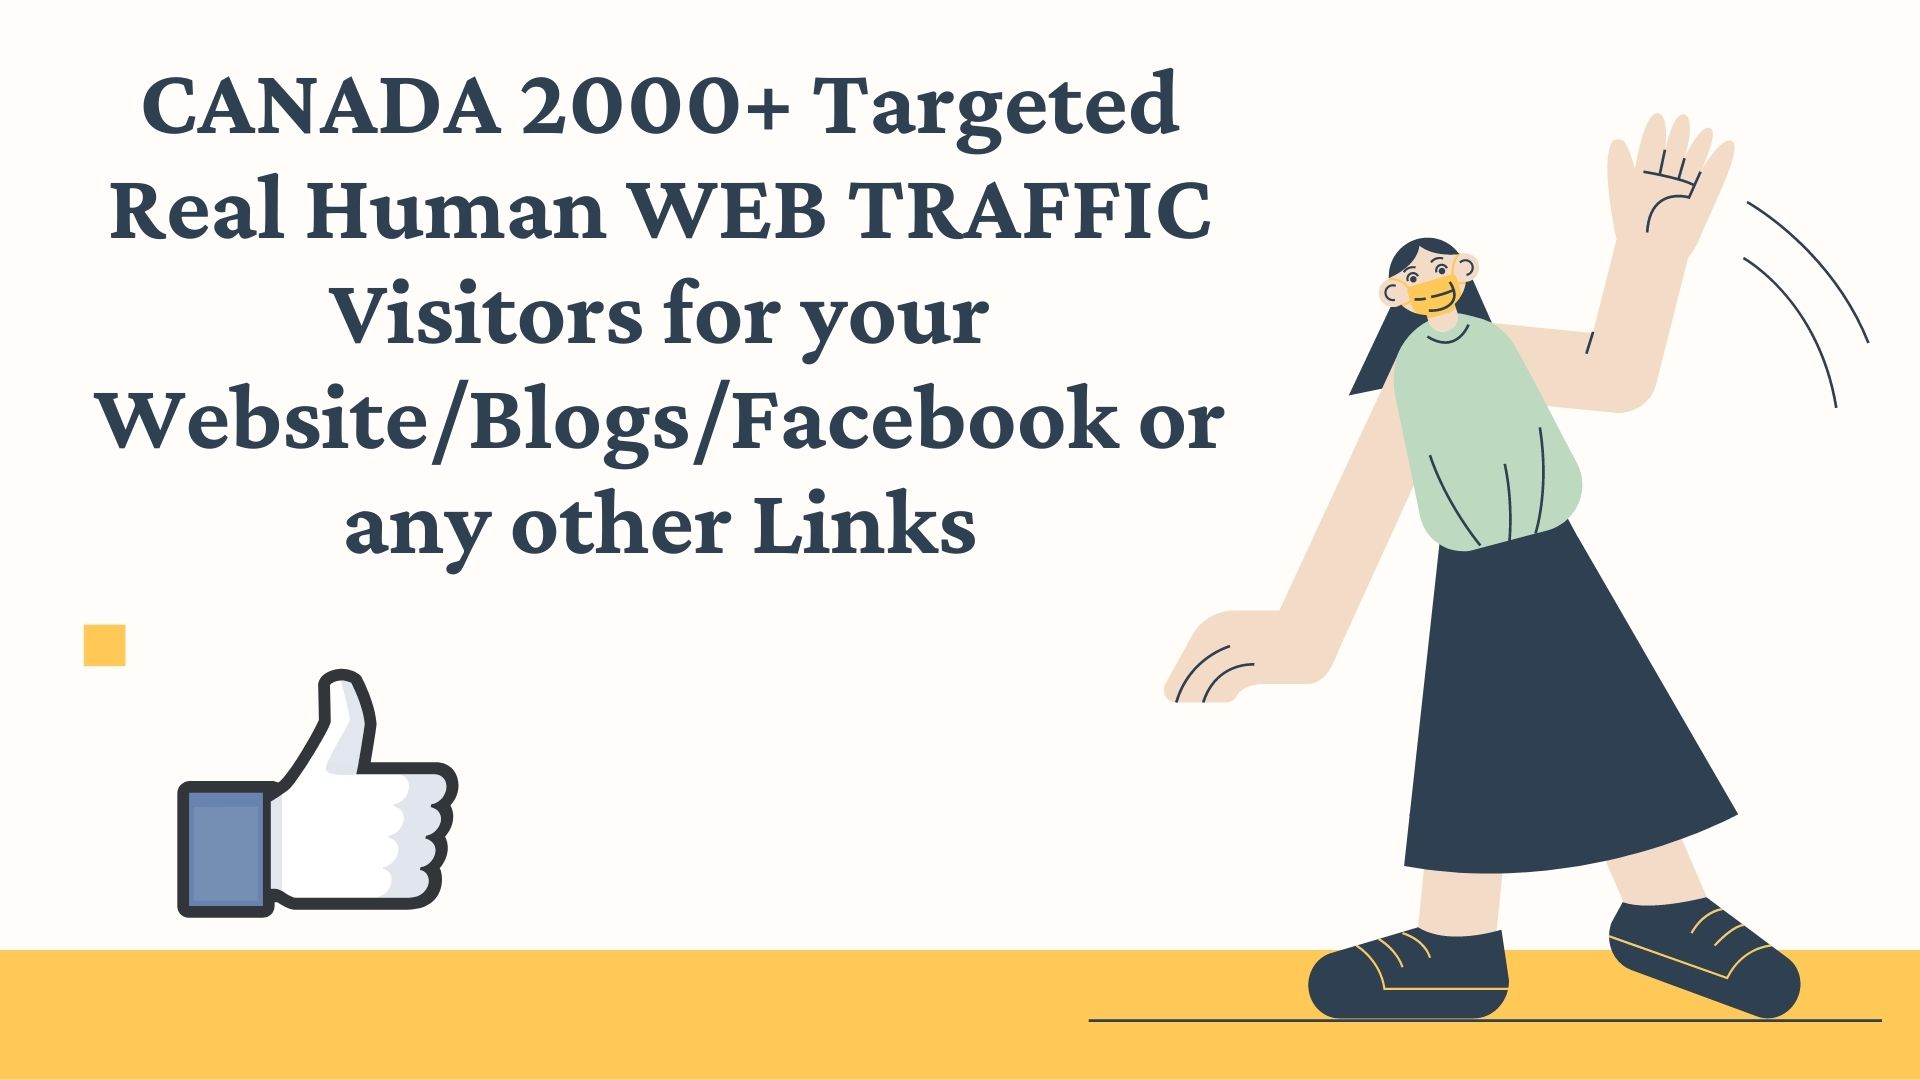 CANADA 2000+ Targeted Real Human WEB TRAFFIC